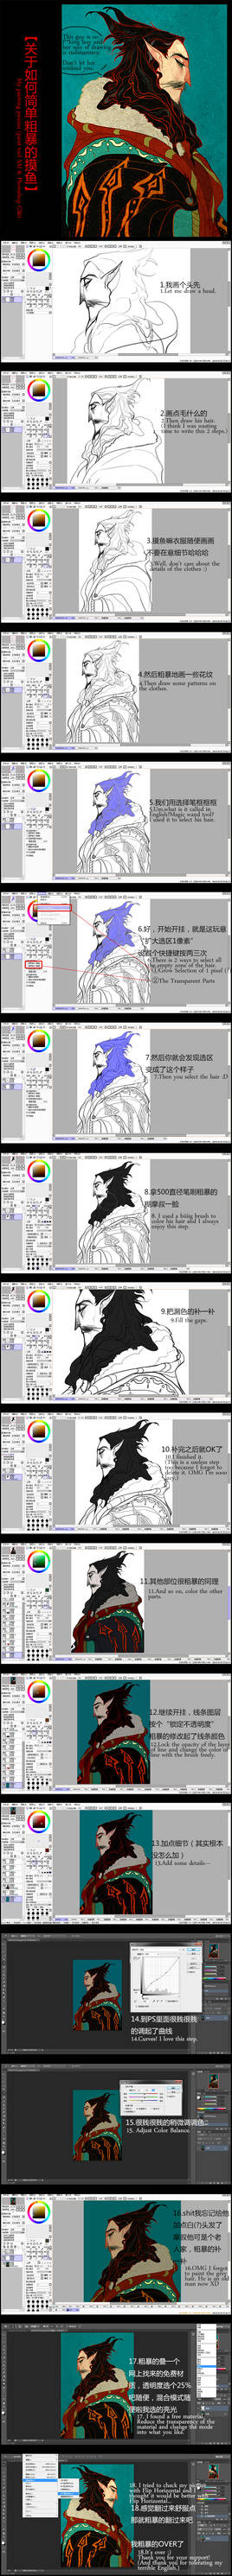 My painting process - Old Mephis